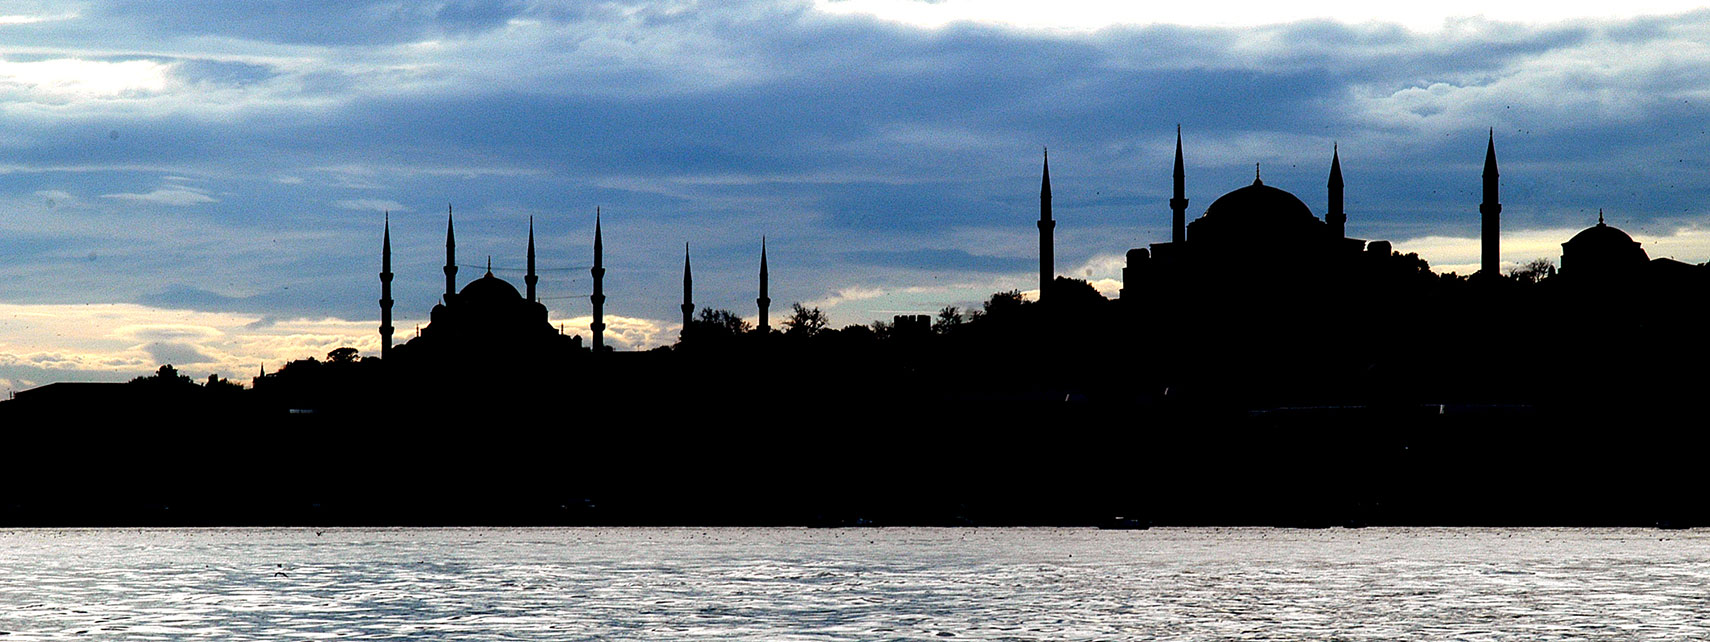 Sultanahmet Mosque (Blue Mosque) and Hagia Sophia (Ayasofya) in Istanbul